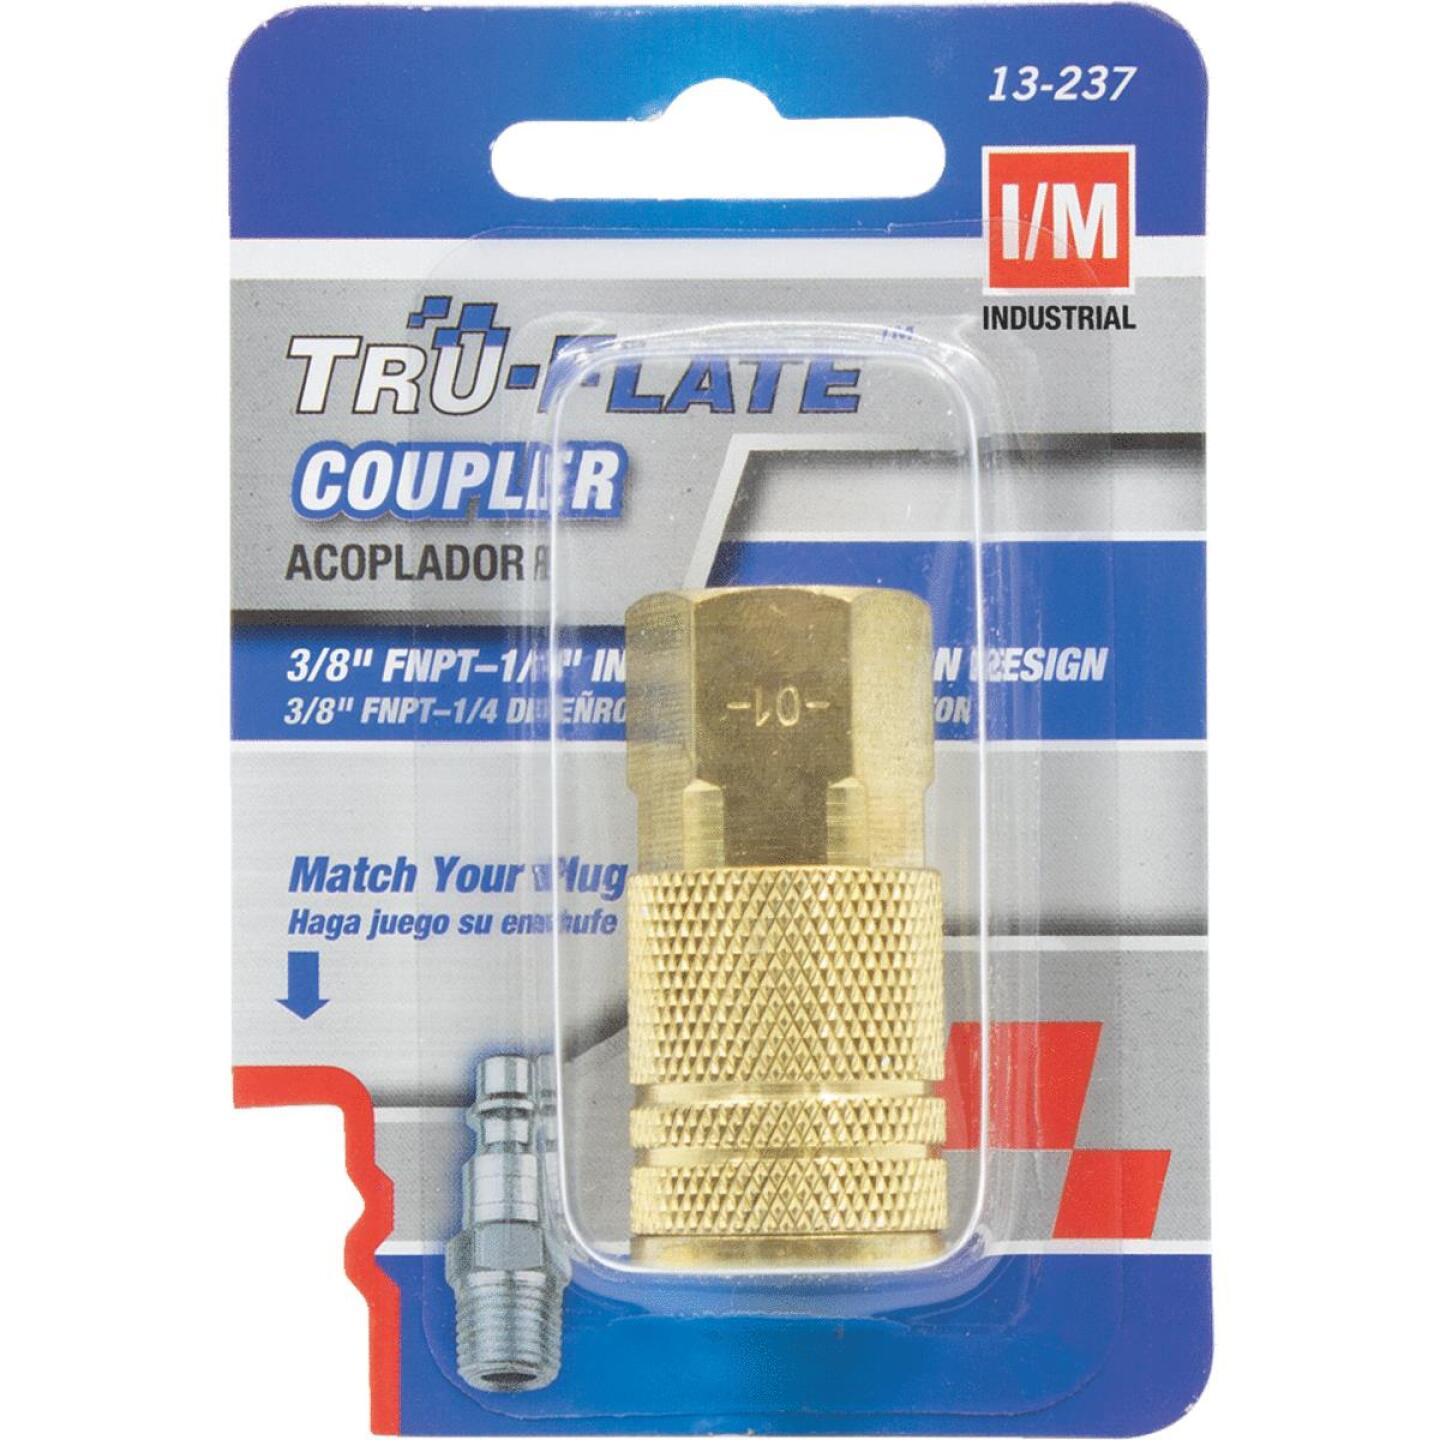 Tru-Flate Industrial/Milton Series Push-to-Connect 3/8 In. FNPT Coupler Image 1